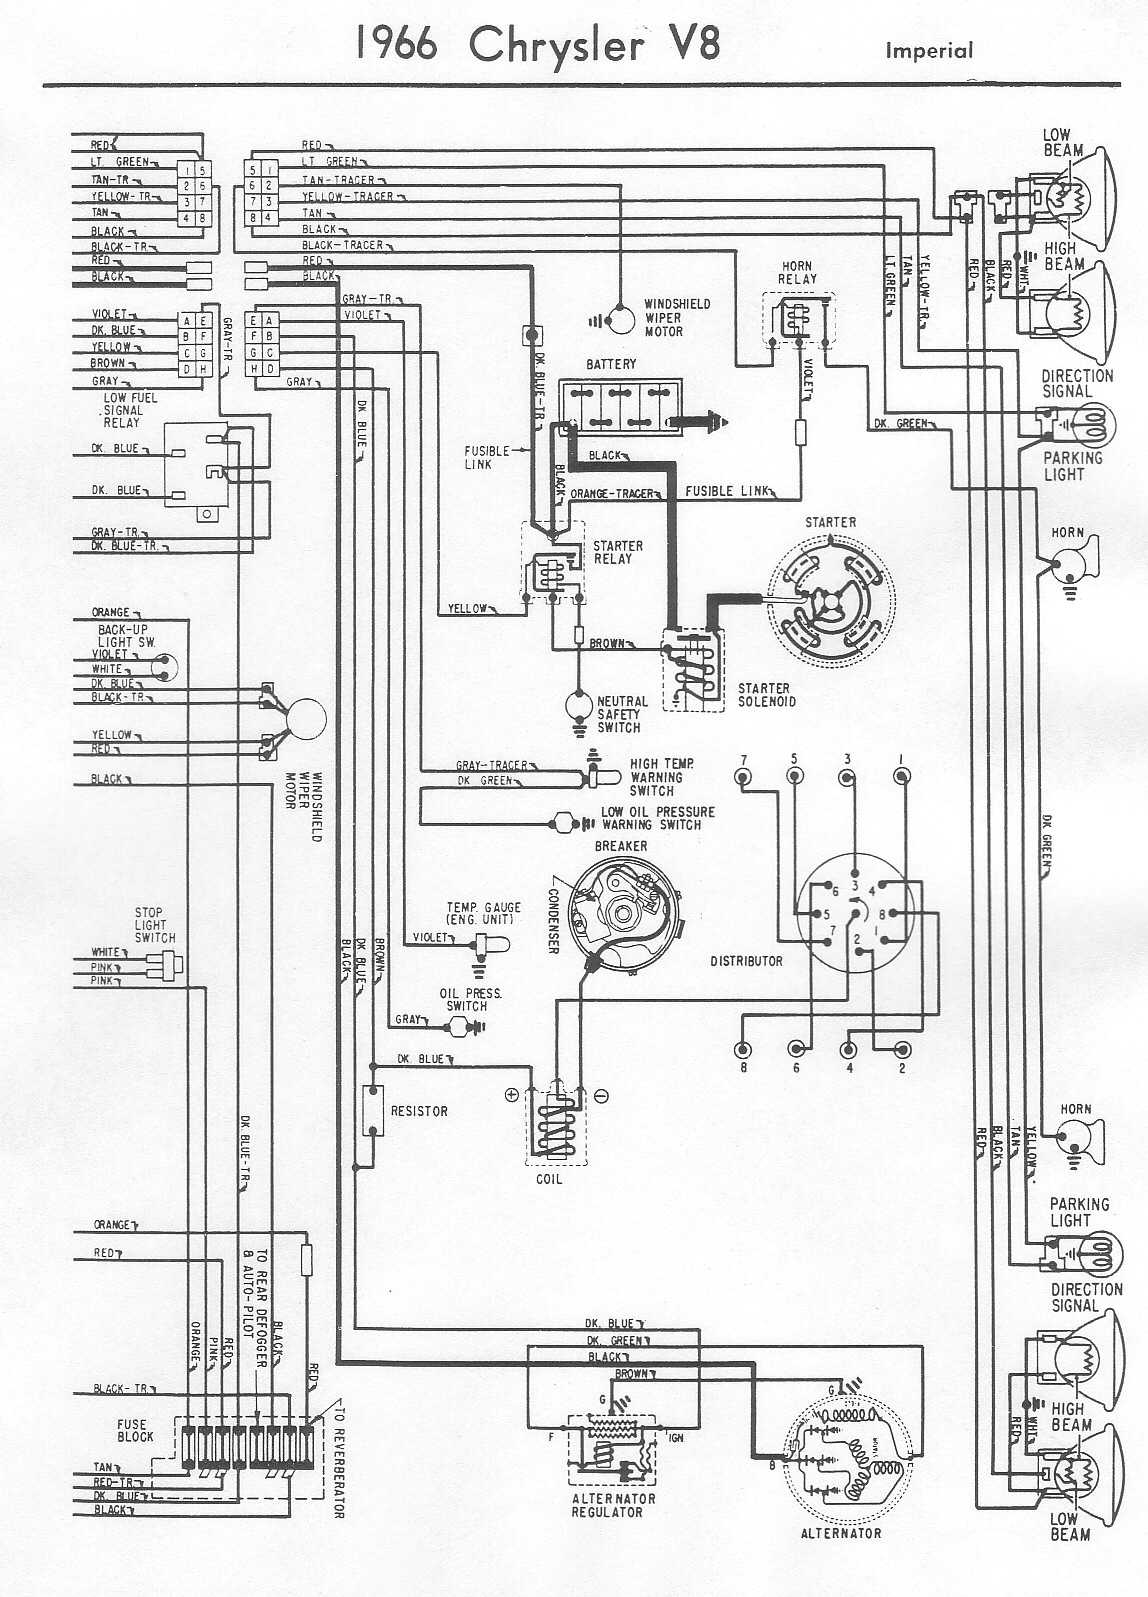 1988 Gmc Sierra 1500 Wiring Diagram additionally Ignition Switch Wiring Diagram Chevy also asirunningshoes together with Electrical Wiring Diagram For 1942 Chevrolet Trucks likewise hotrodders   forum alternatorwiringquestions178005. on 1958 chevy pickup wiring diagrams